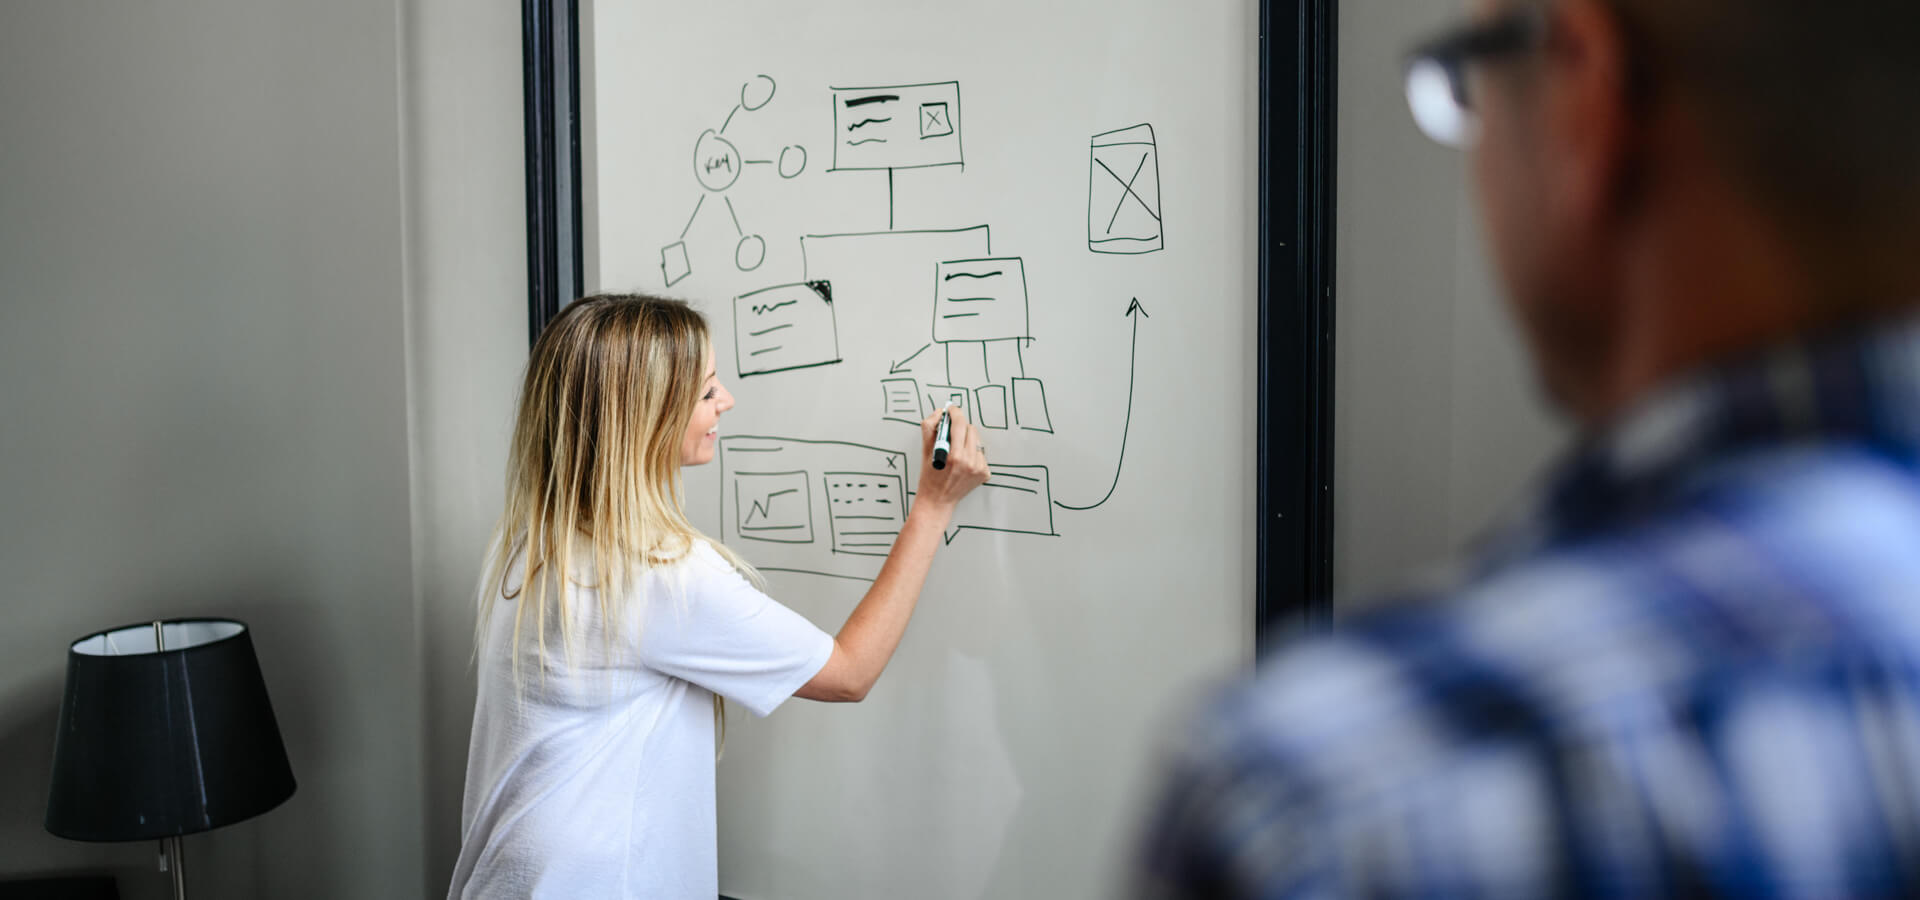 person drawing a wireframe on a whiteboard